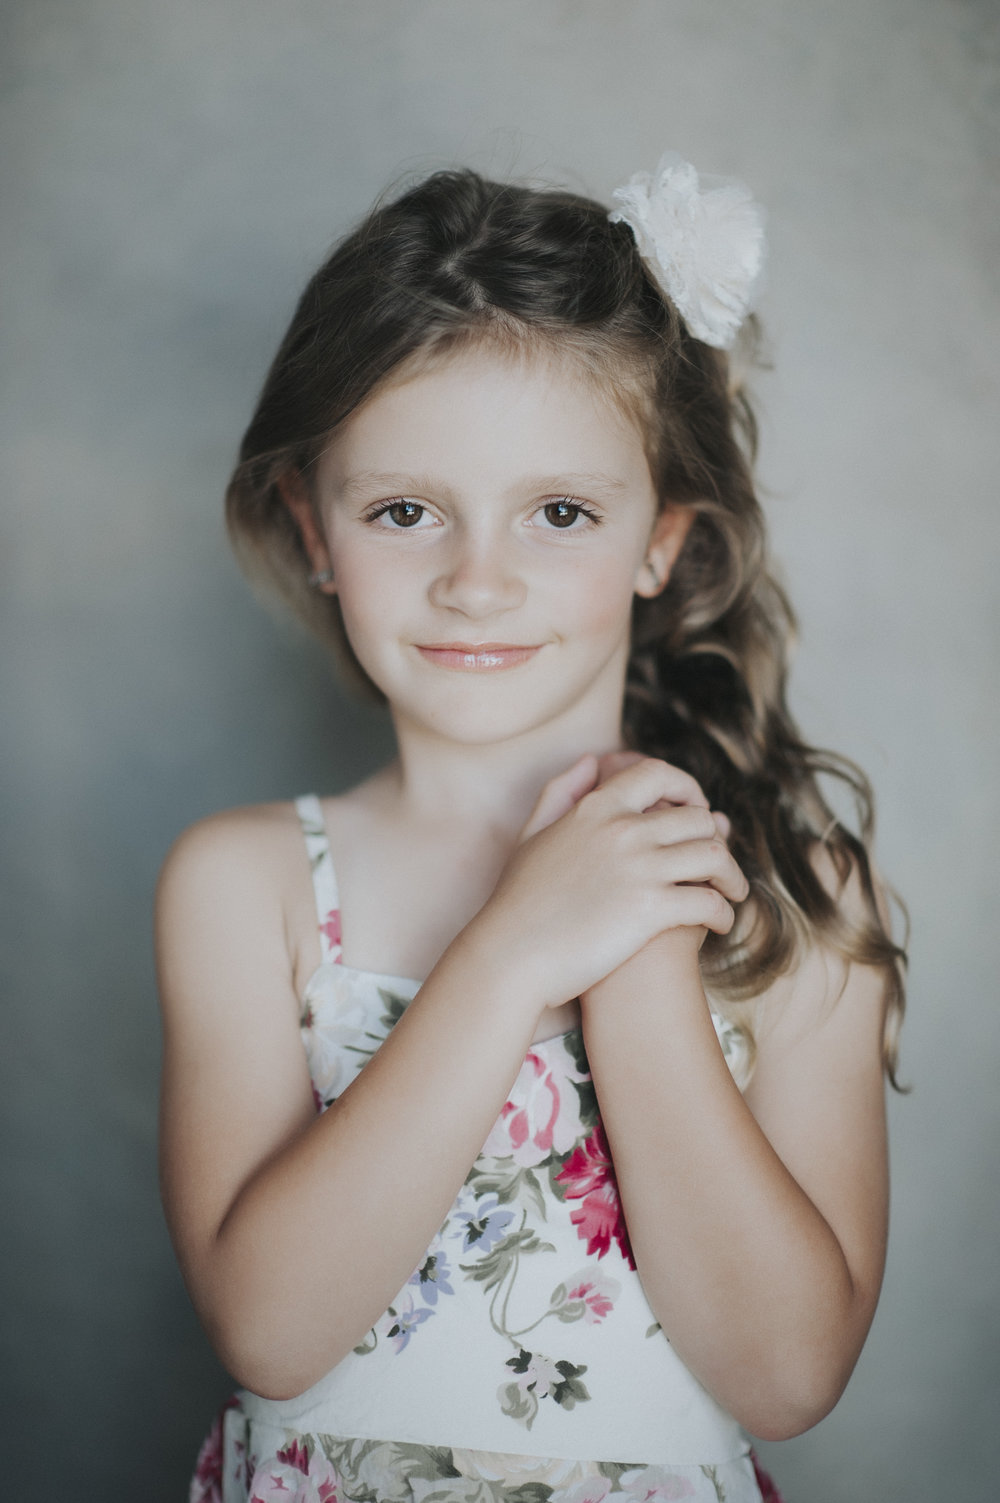 Child Portraits - $75 - This session includes 3 edited high resolution digital images with print release. Two background changes, one dark and one light background.